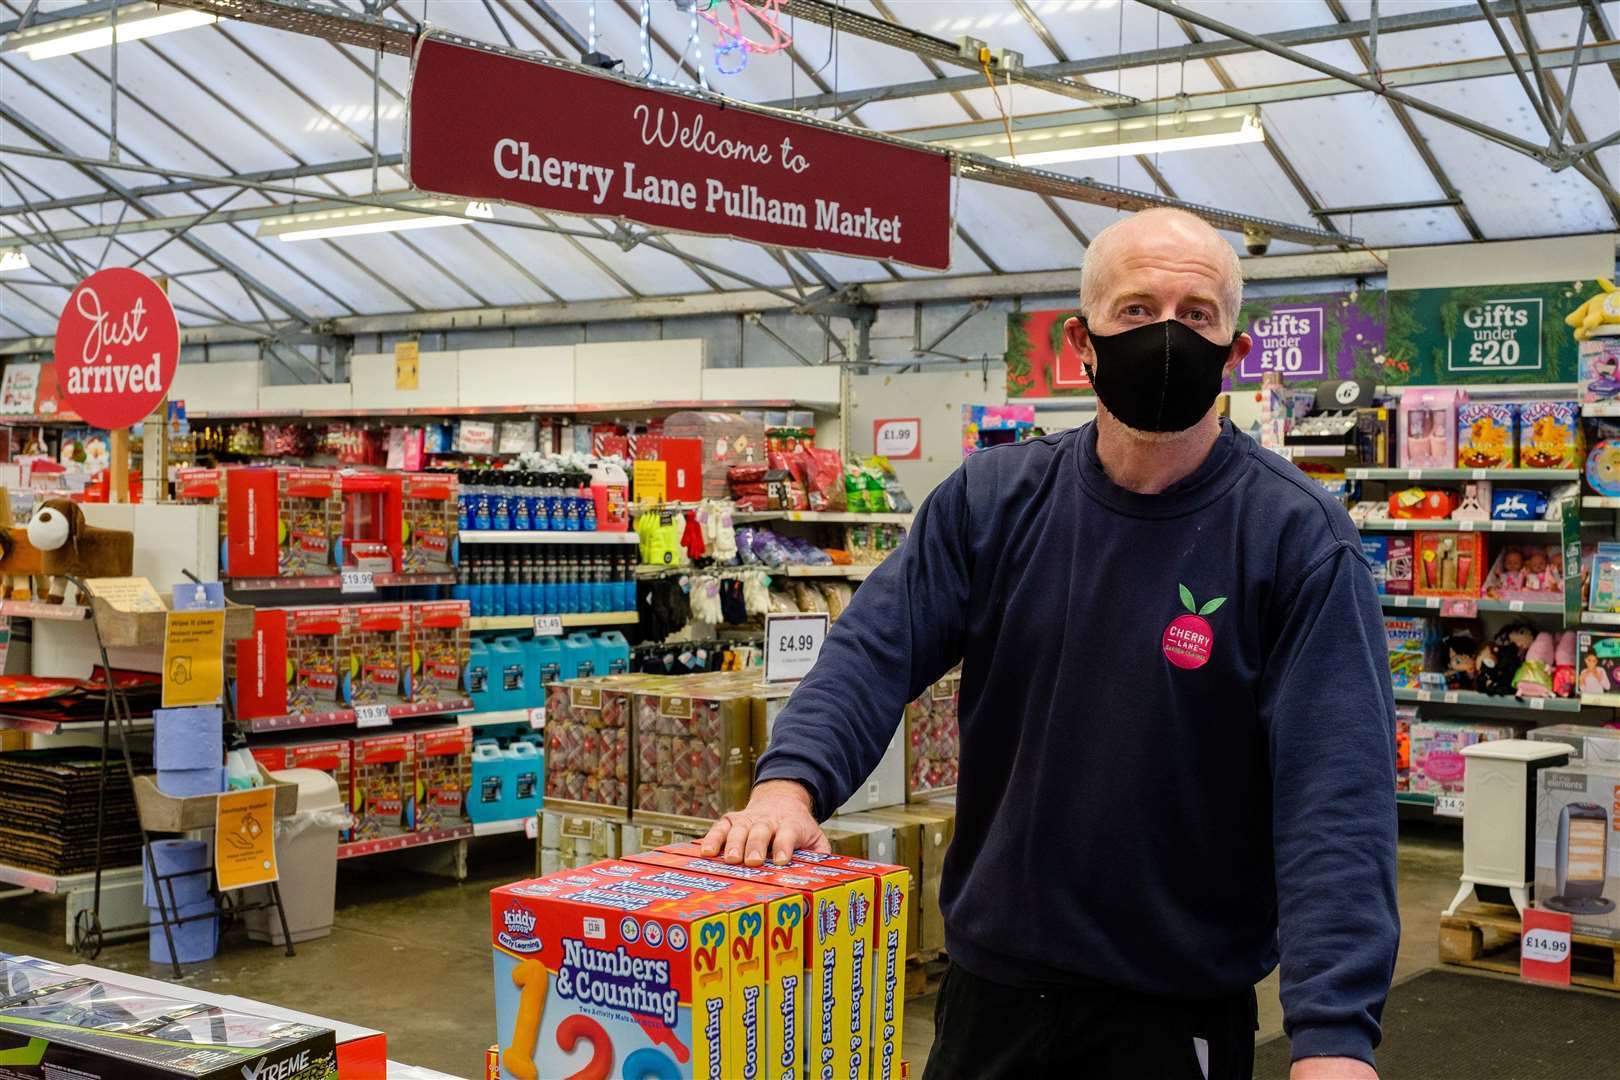 Pulham Market, Norfolk, 16/12/2020..Cherry Lane Garden Centre in Pulham Market, cancelled it's Santa's Grotto this year, the garden centre has donated all it's gifts to Netherton Steakhouse's Christmas appeal. Pictured is Store manager Tom Berrisford. ..Picture: Mark Bullimore Photography. (43595100)